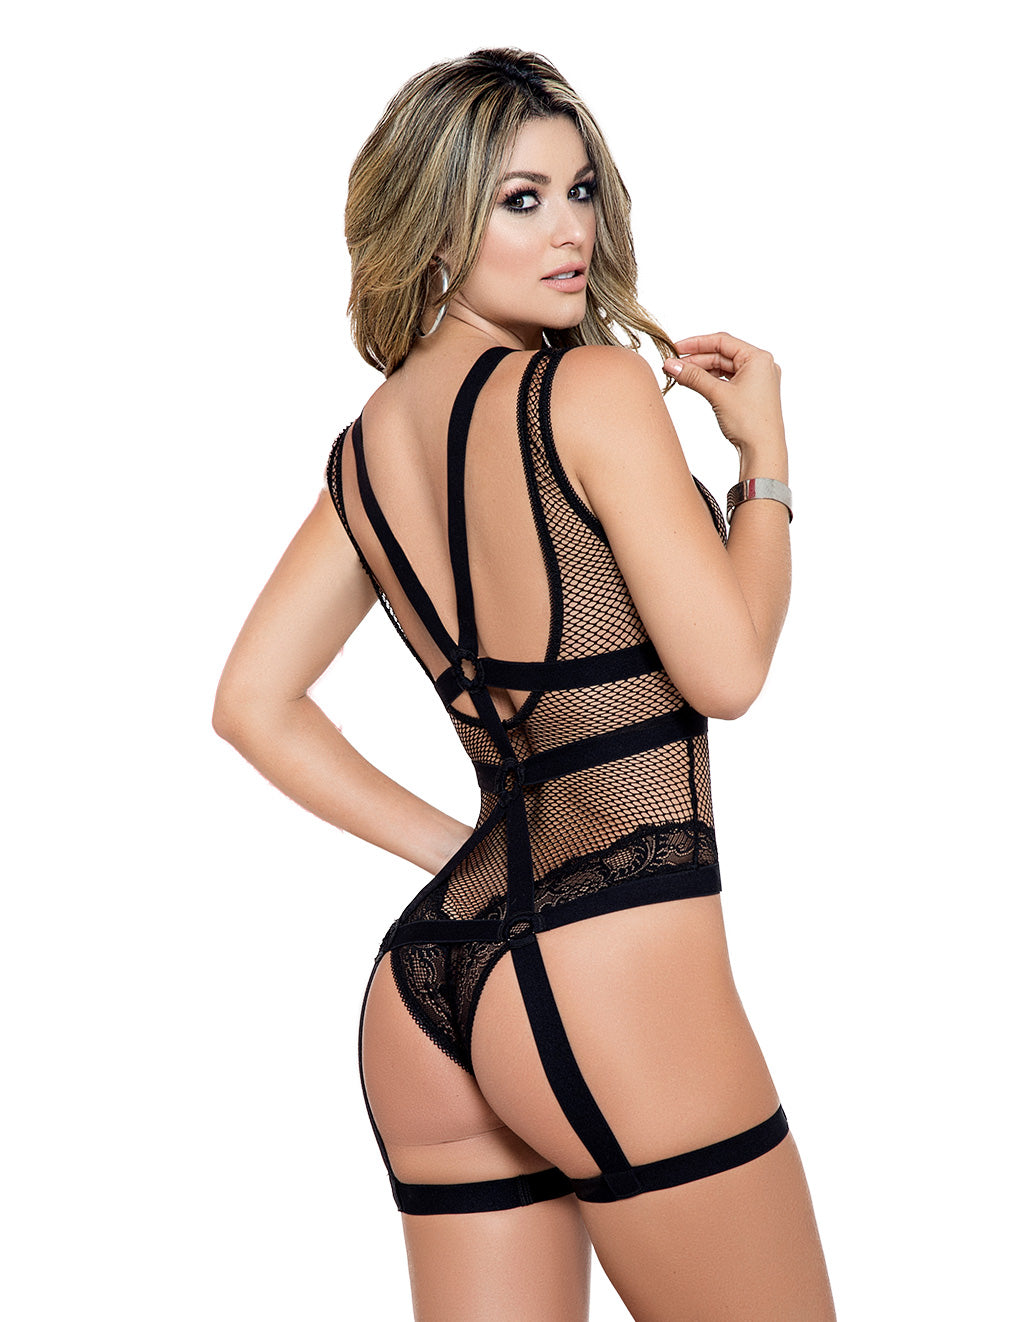 Mapale Net Teddy with Detachable Harness Extra Large